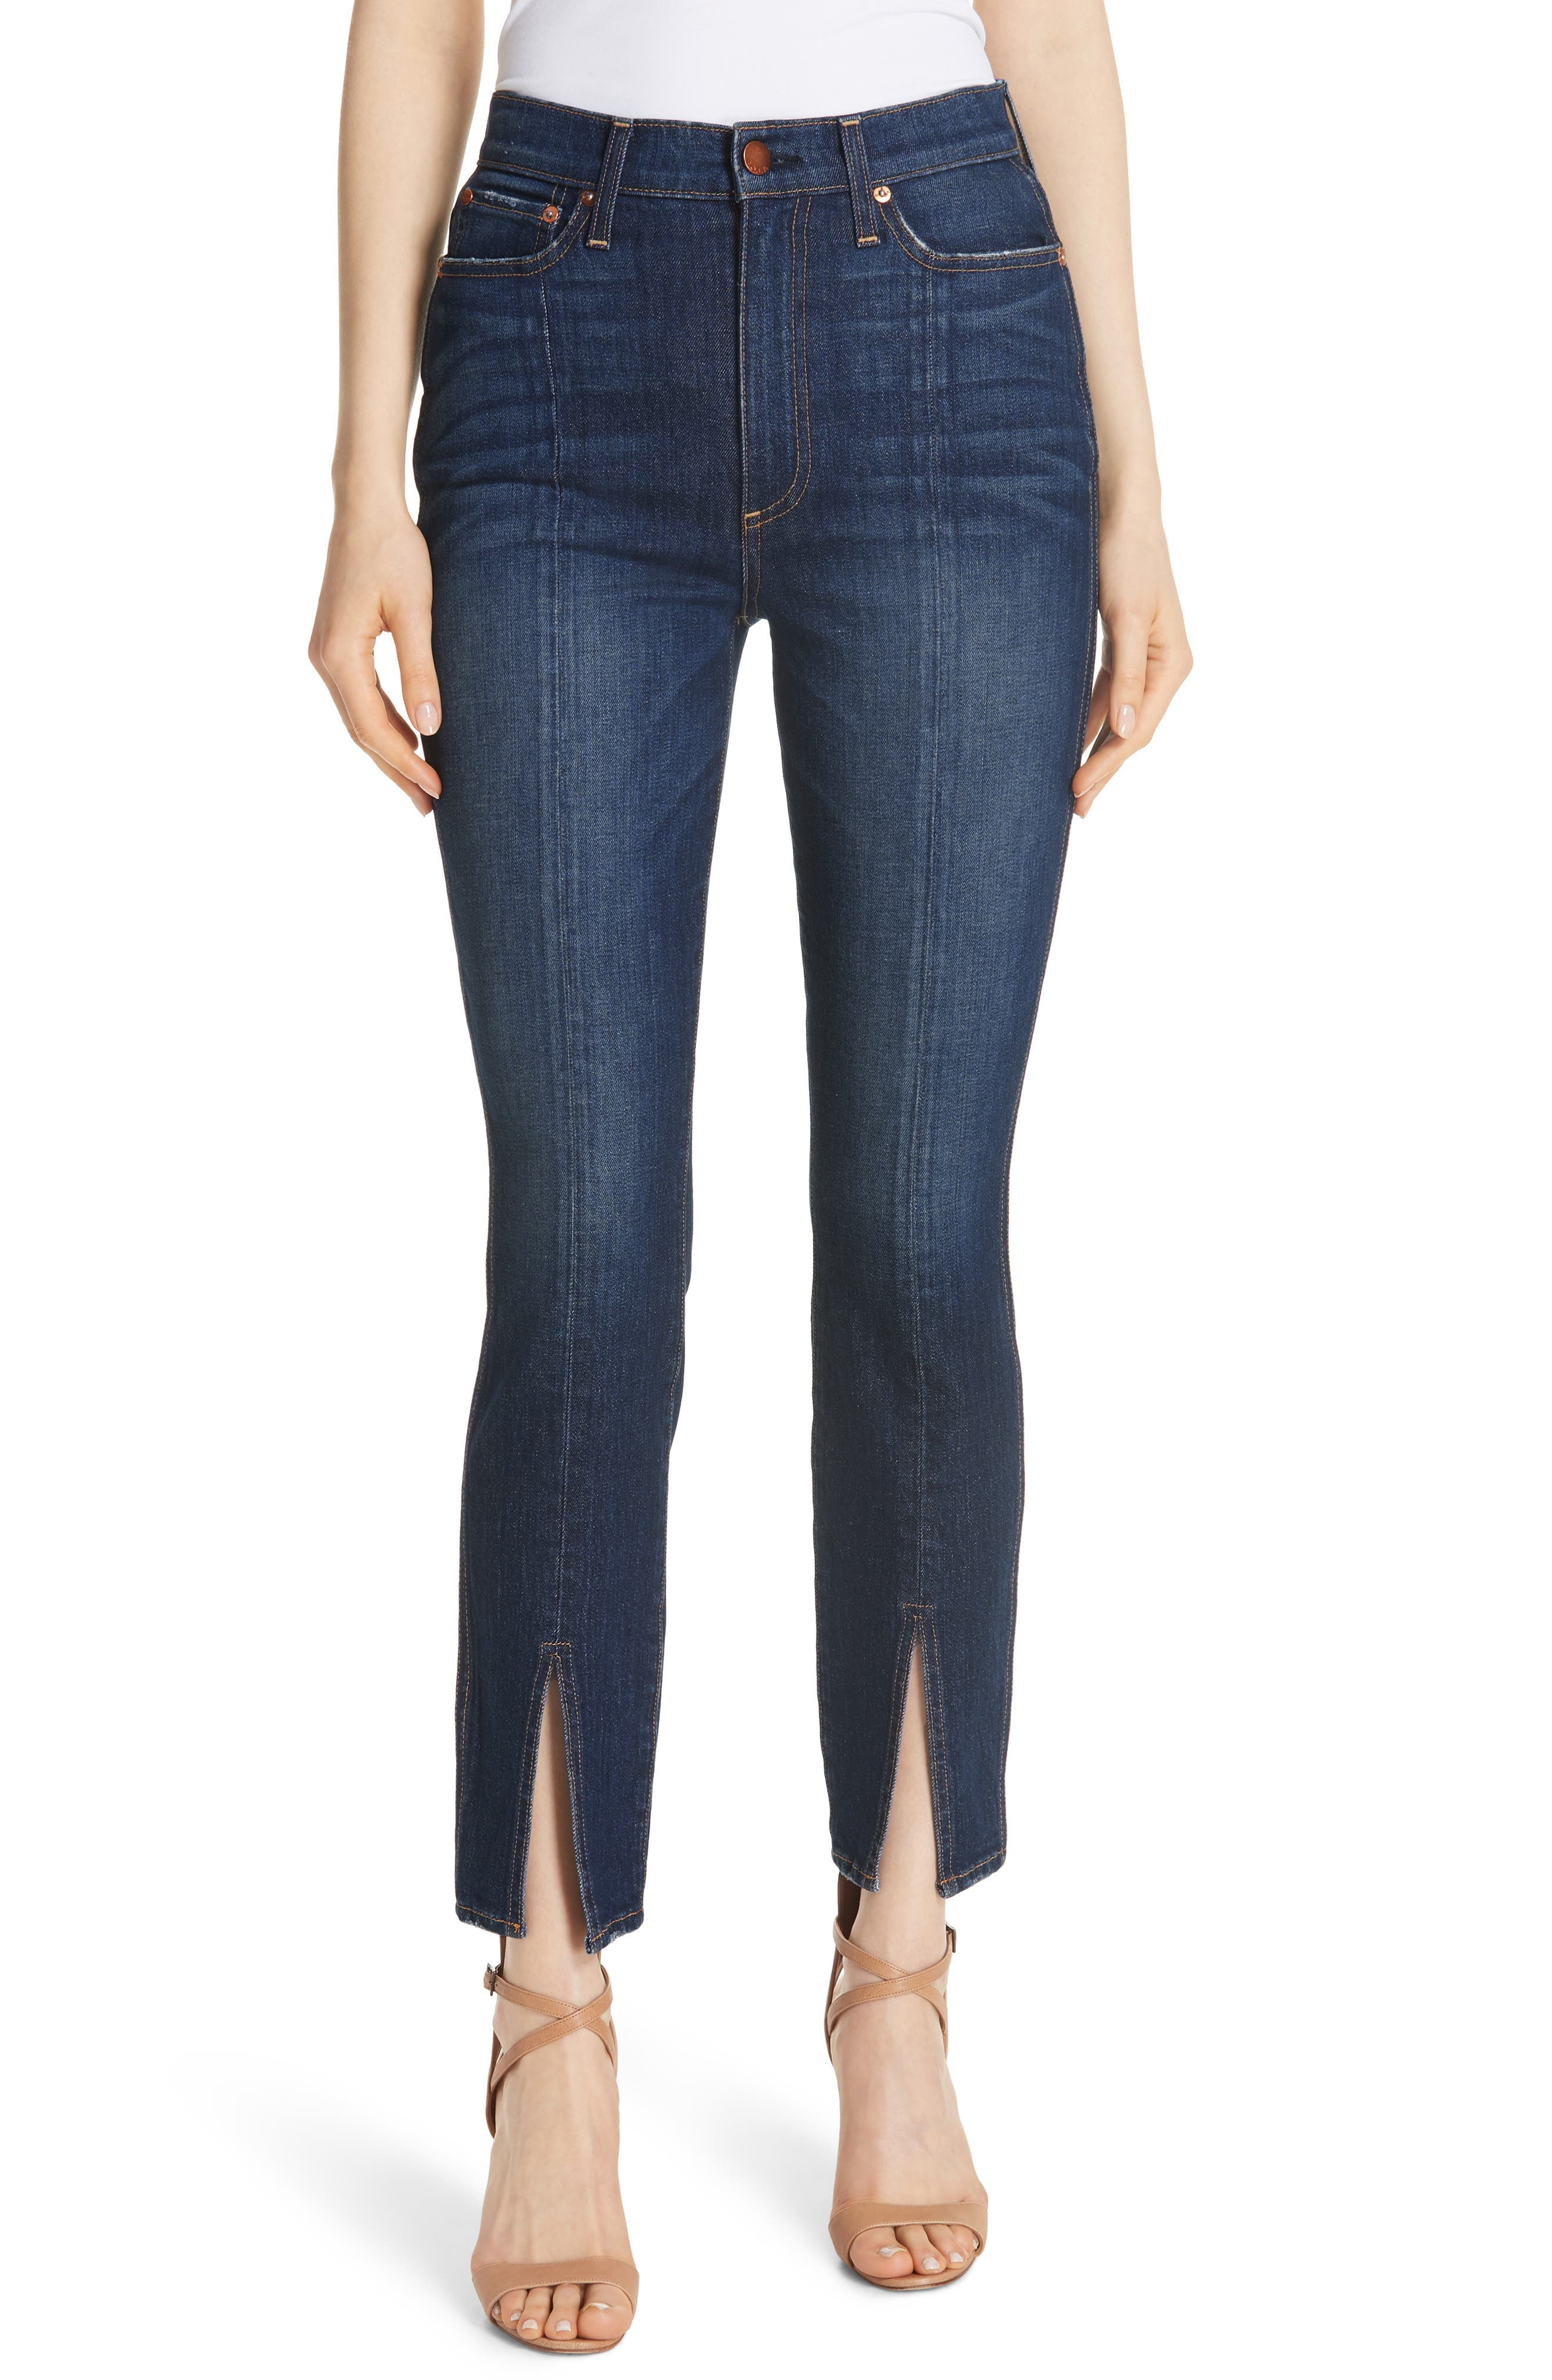 AO.LA Good High Waist Front Slit Skinny Jeans,                         Main,                         color, GOOD TIMES